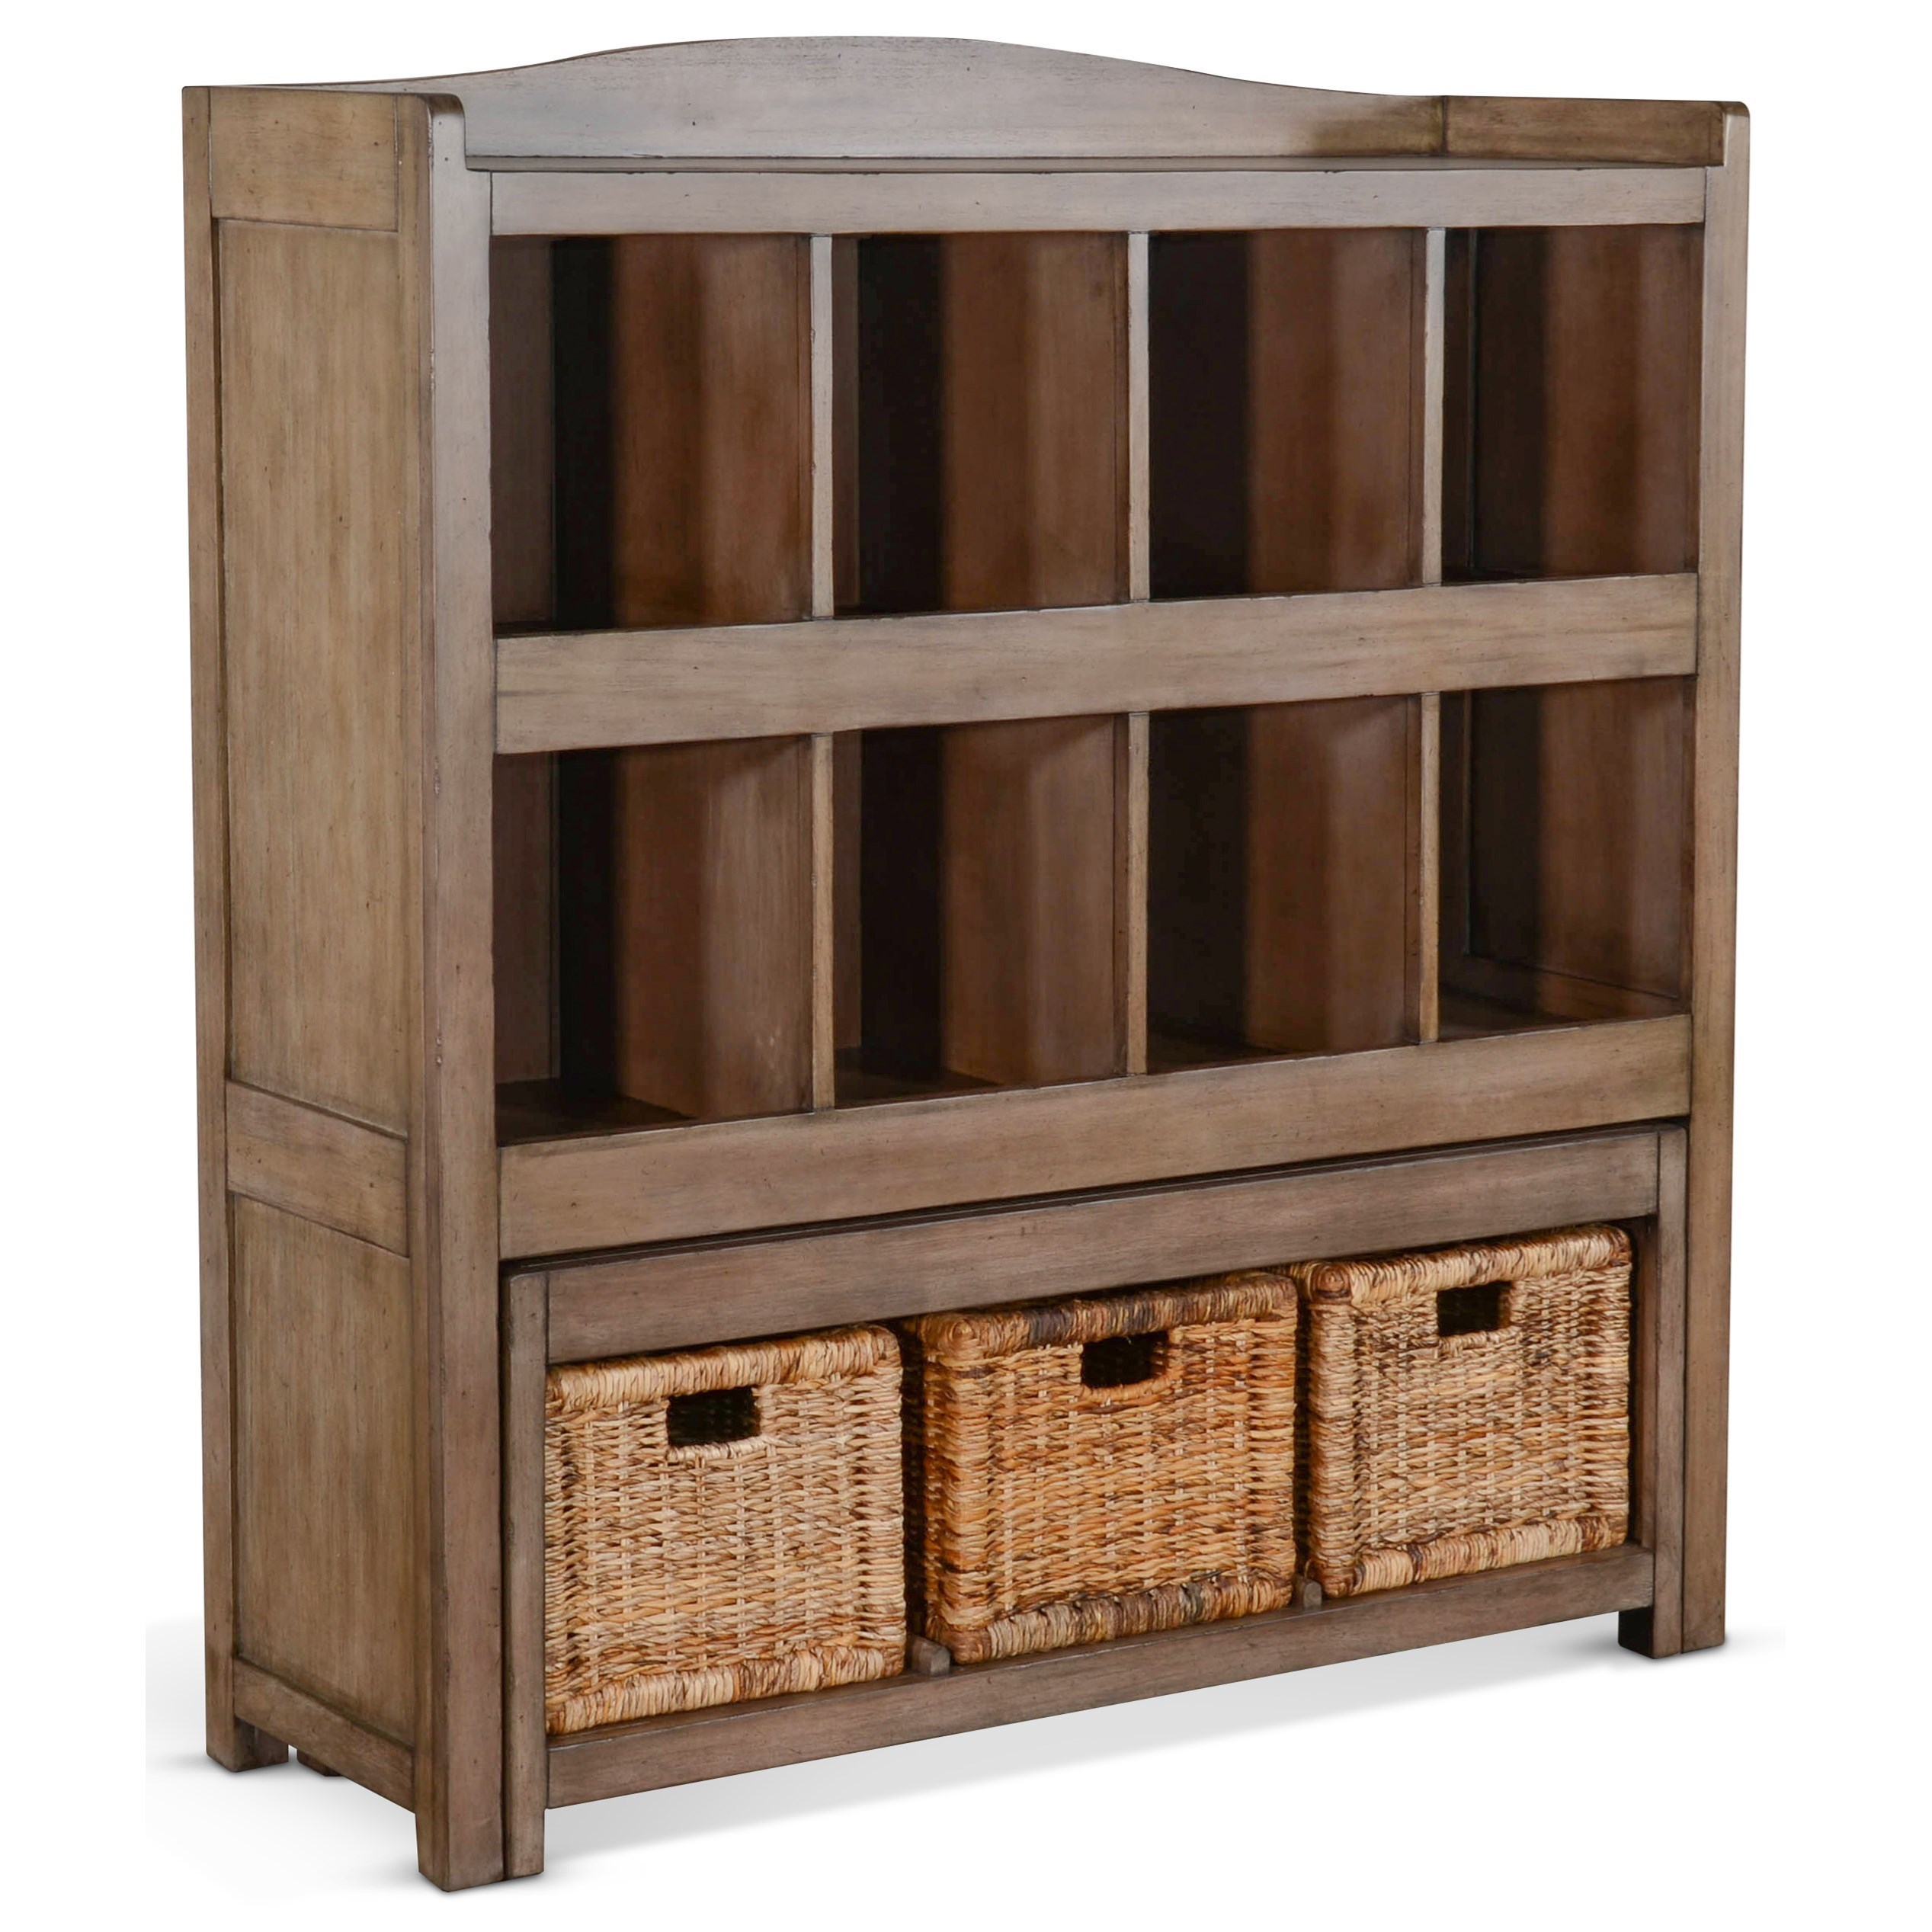 2993 Storage Bookcase w/ Trundle Bench by Sunny Designs at Wayside Furniture